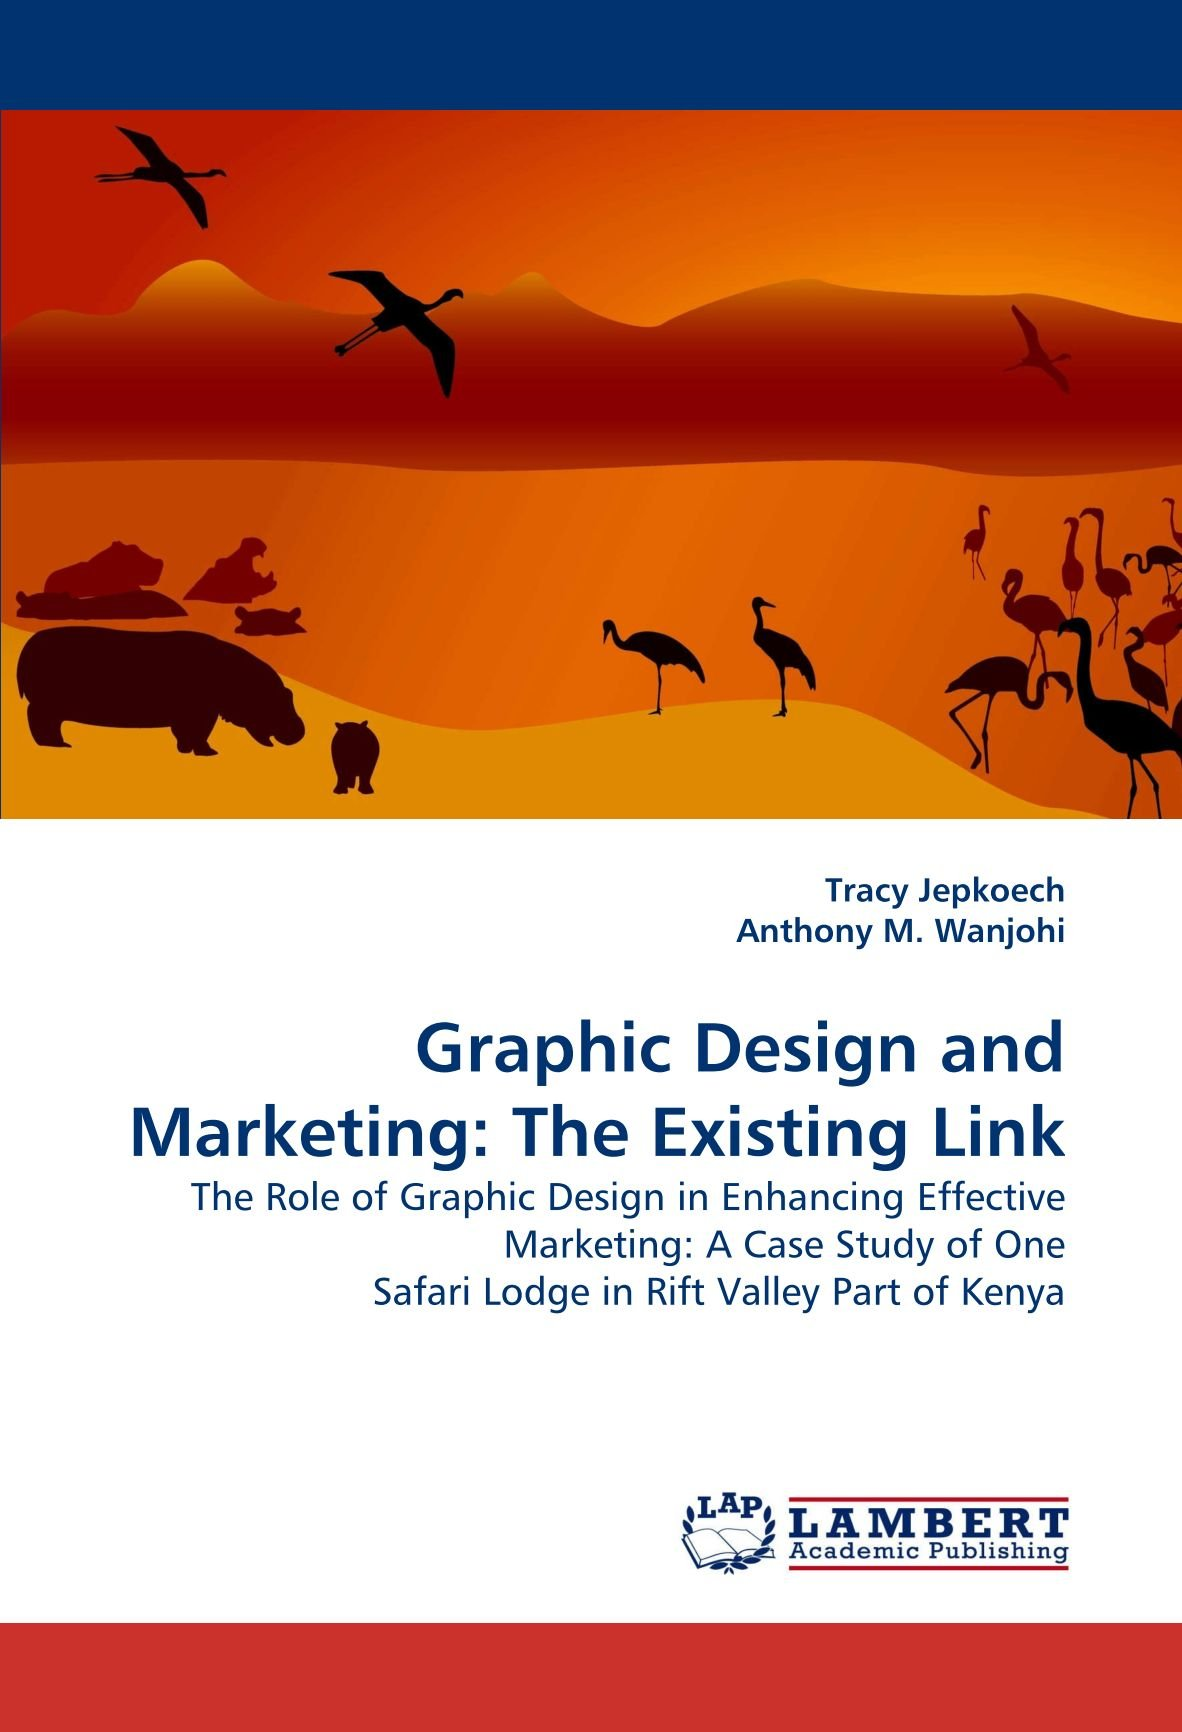 Download Graphic Design and Marketing: The Existing Link: The Role of Graphic Design in Enhancing Effective Marketing: A Case Study of One Safari Lodge in Rift Valley Part of Kenya pdf